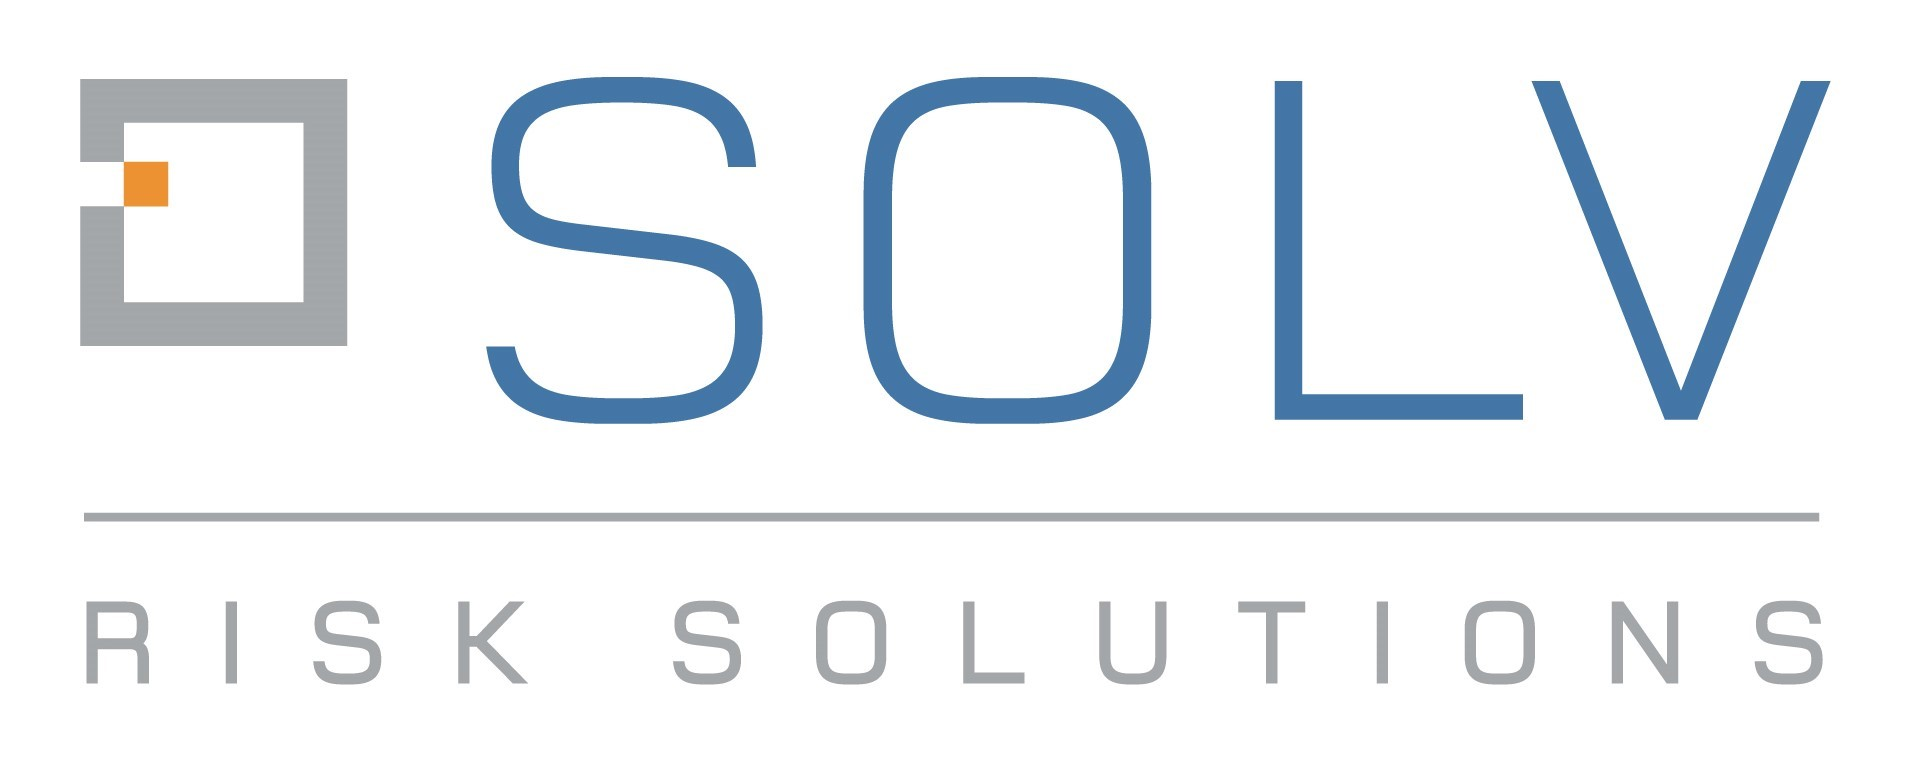 SOlv risk logo